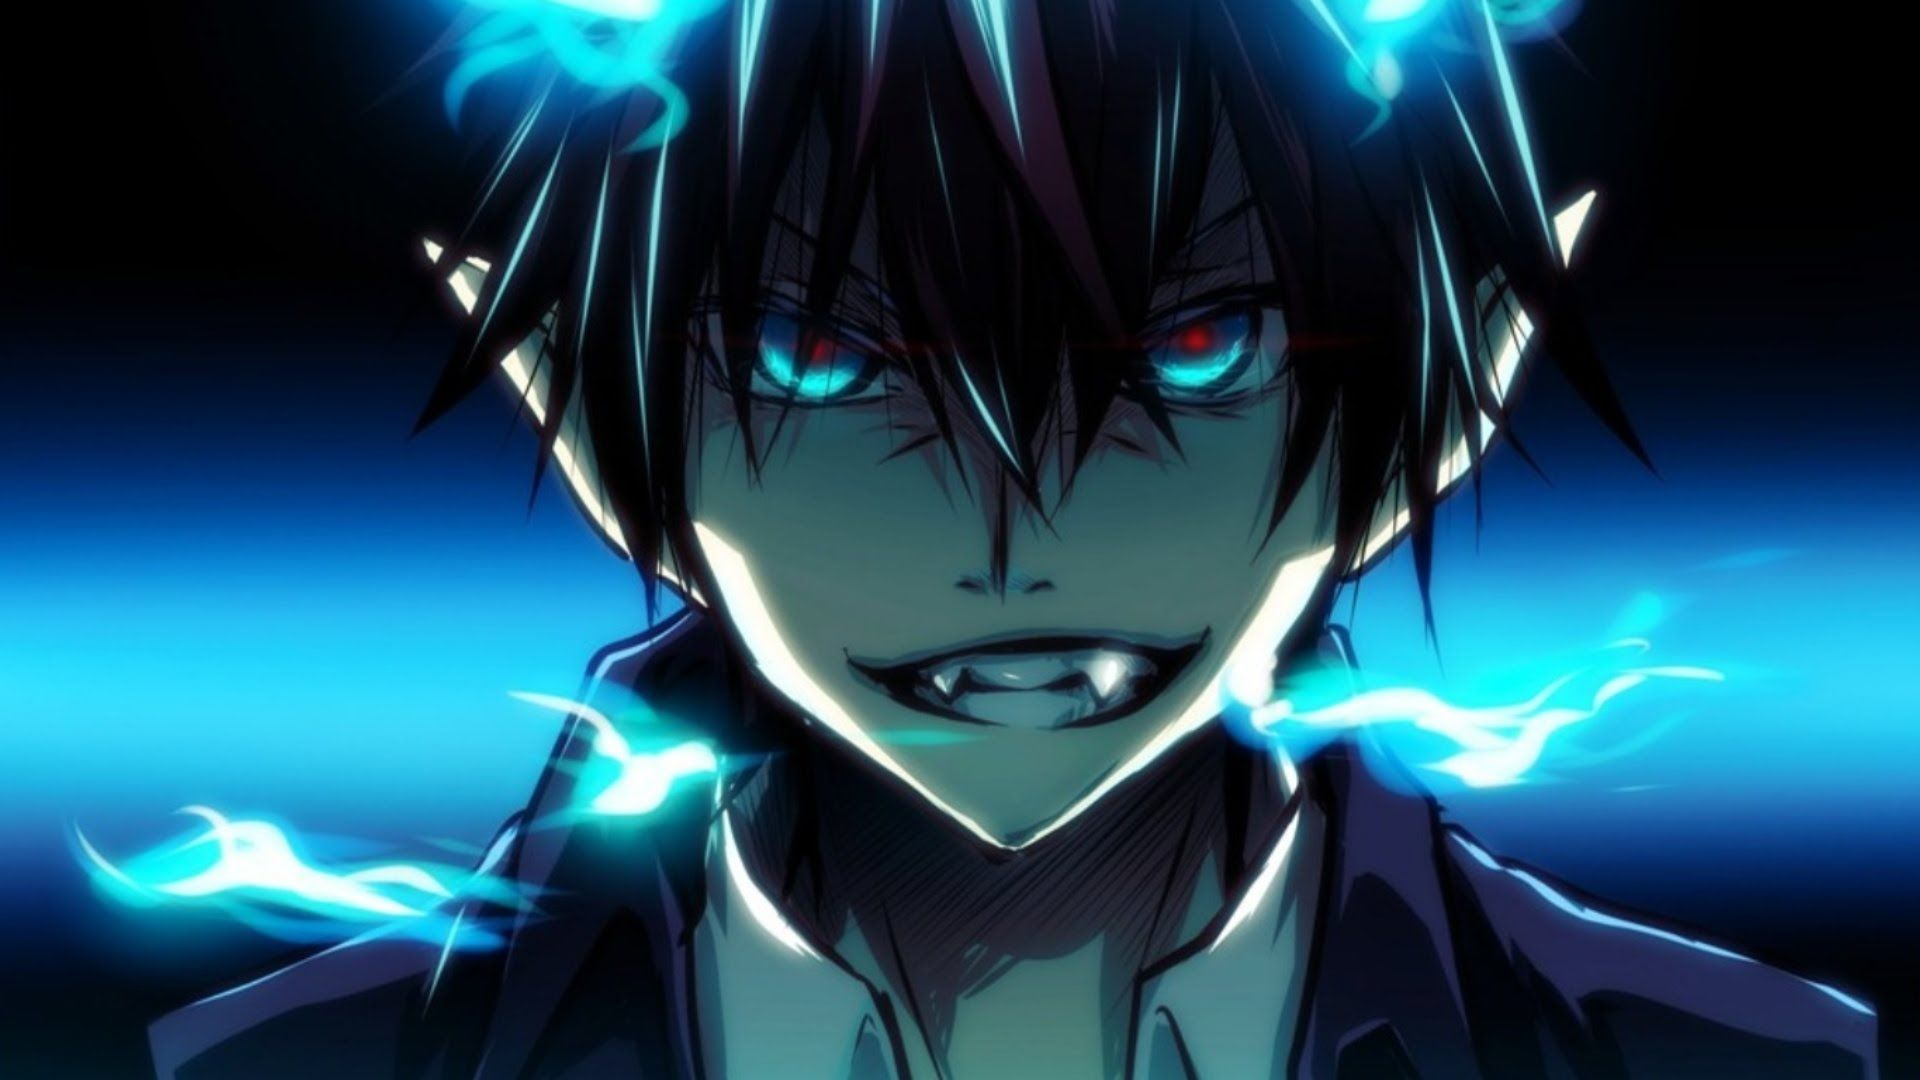 Blue Exorcist wallpapers, Anime, HQ Blue Exorcist pictures